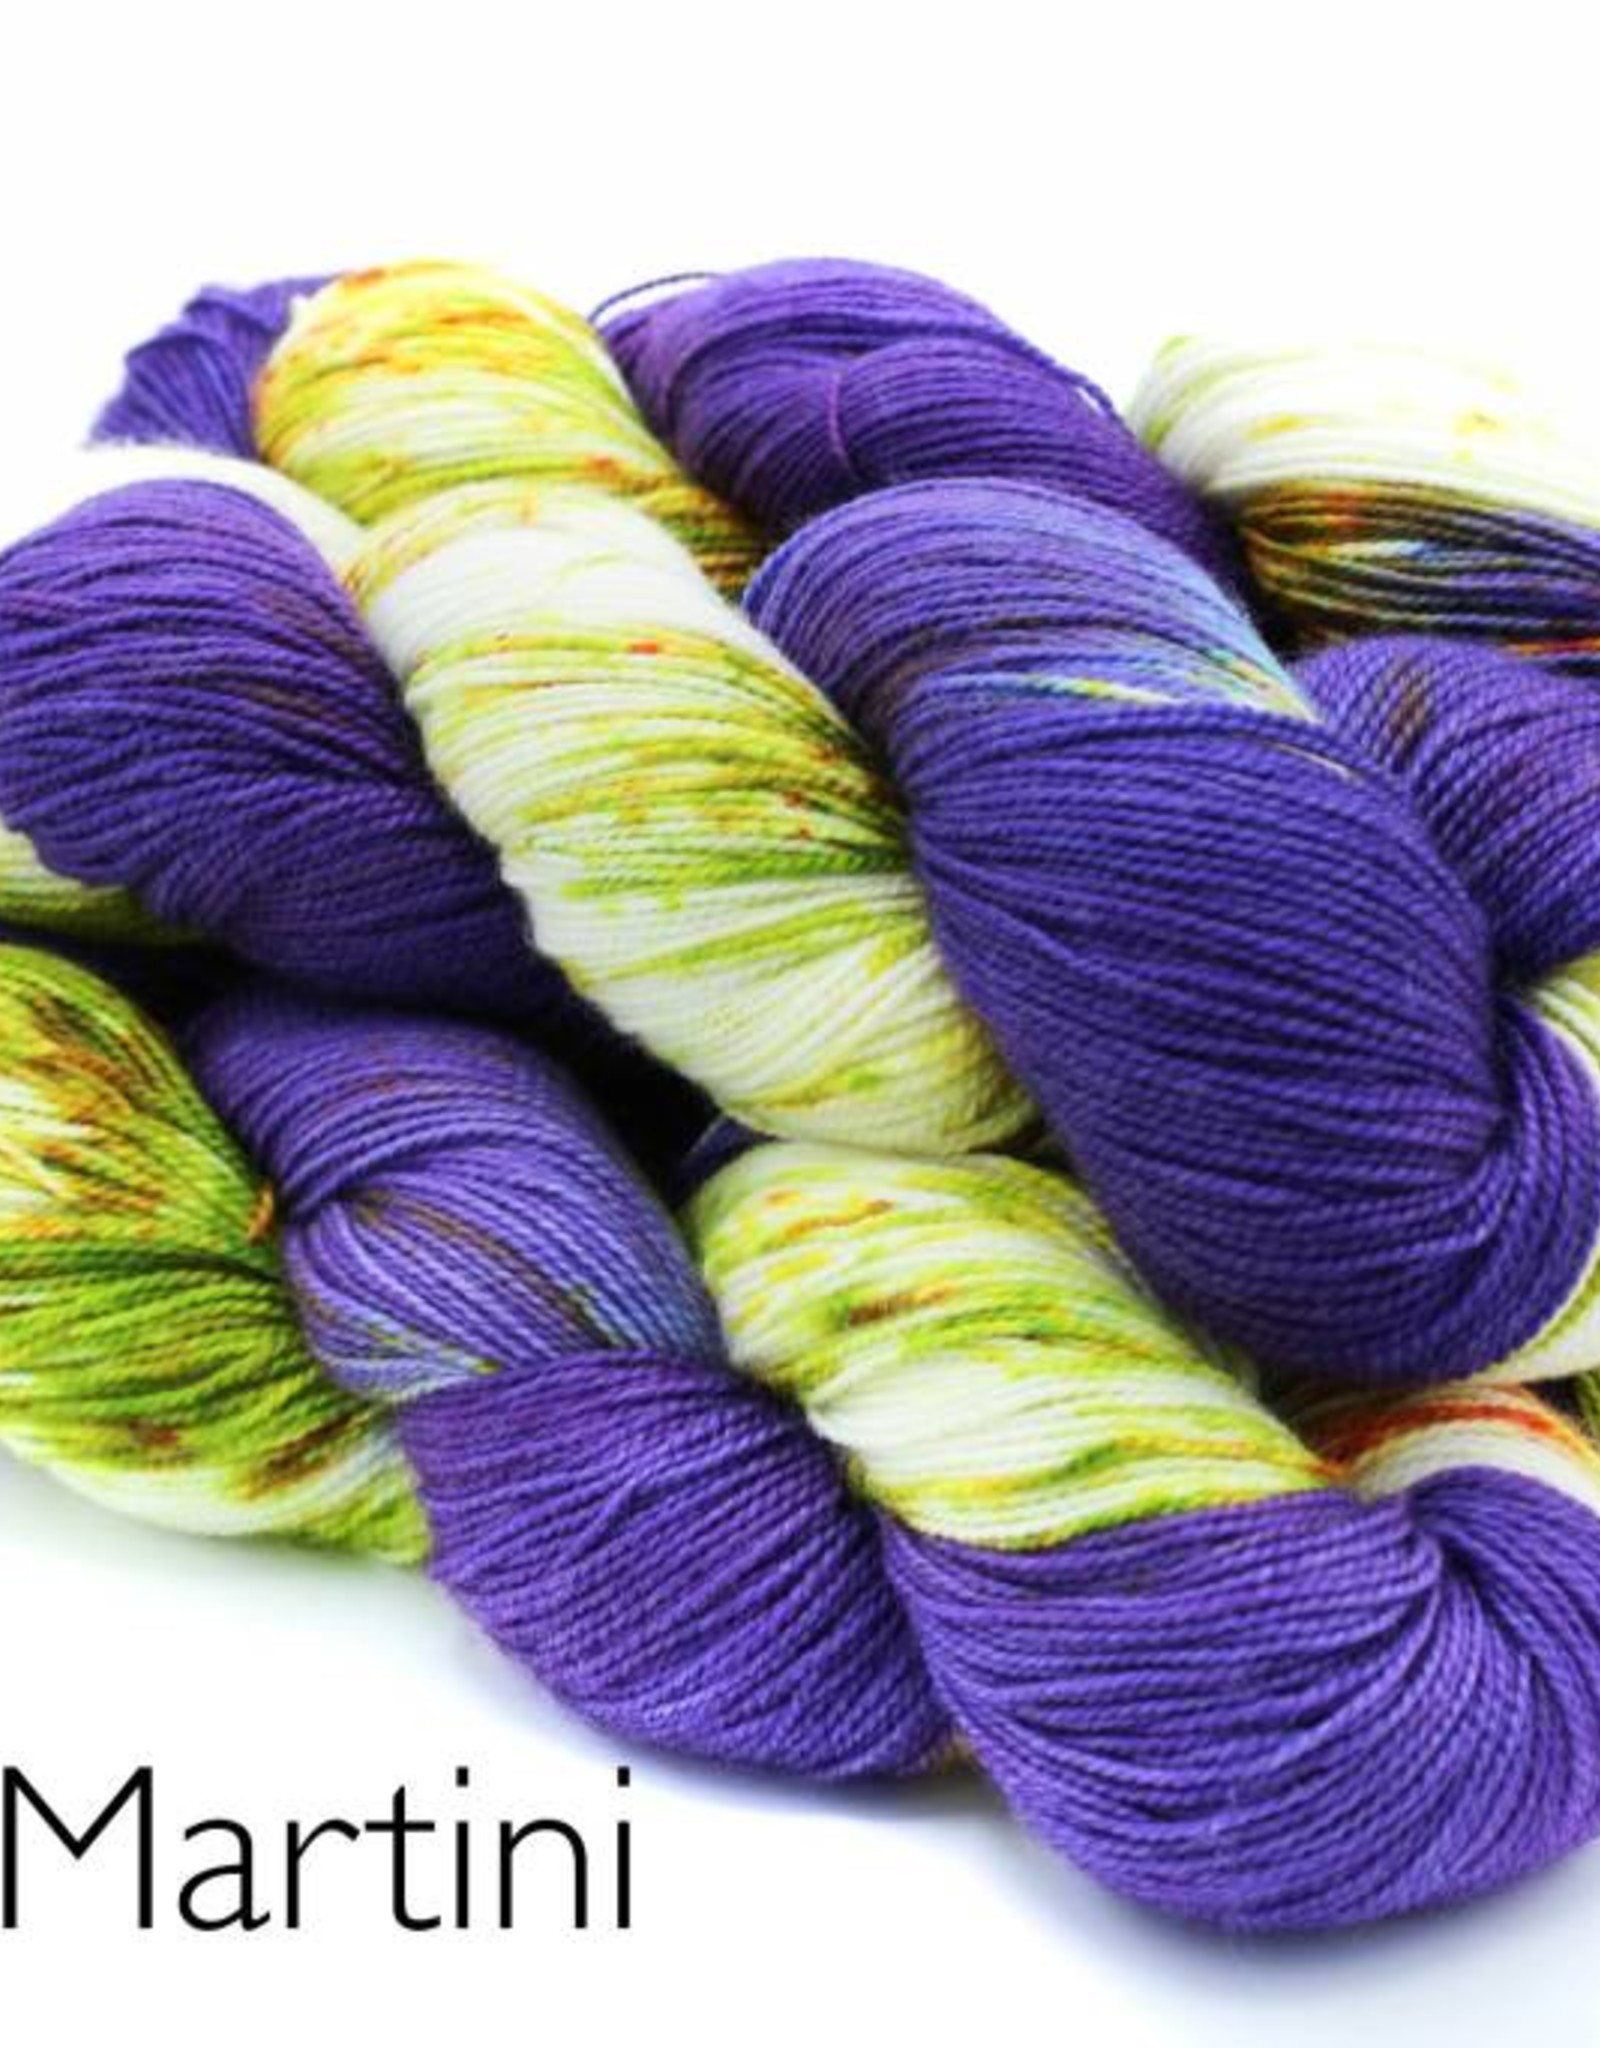 Baah yarns Savannah